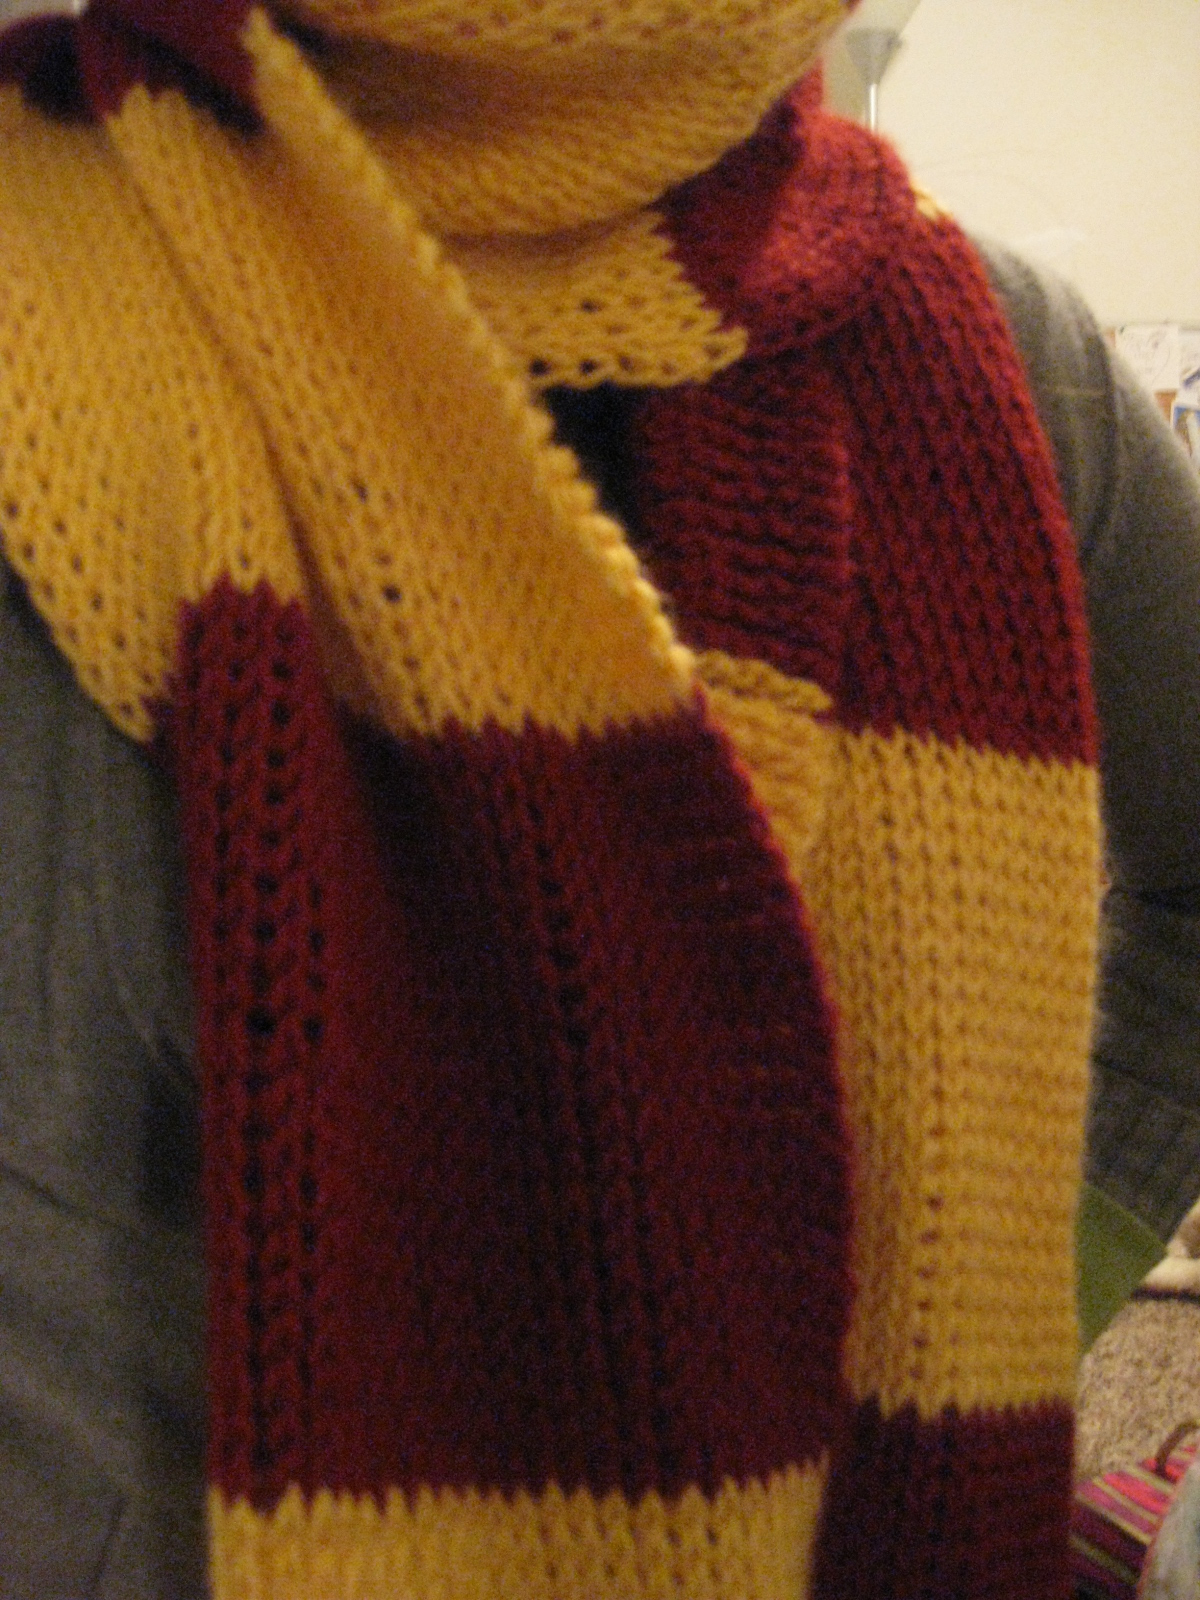 Live. Love. Laugh.: Harry Potter Scarf!